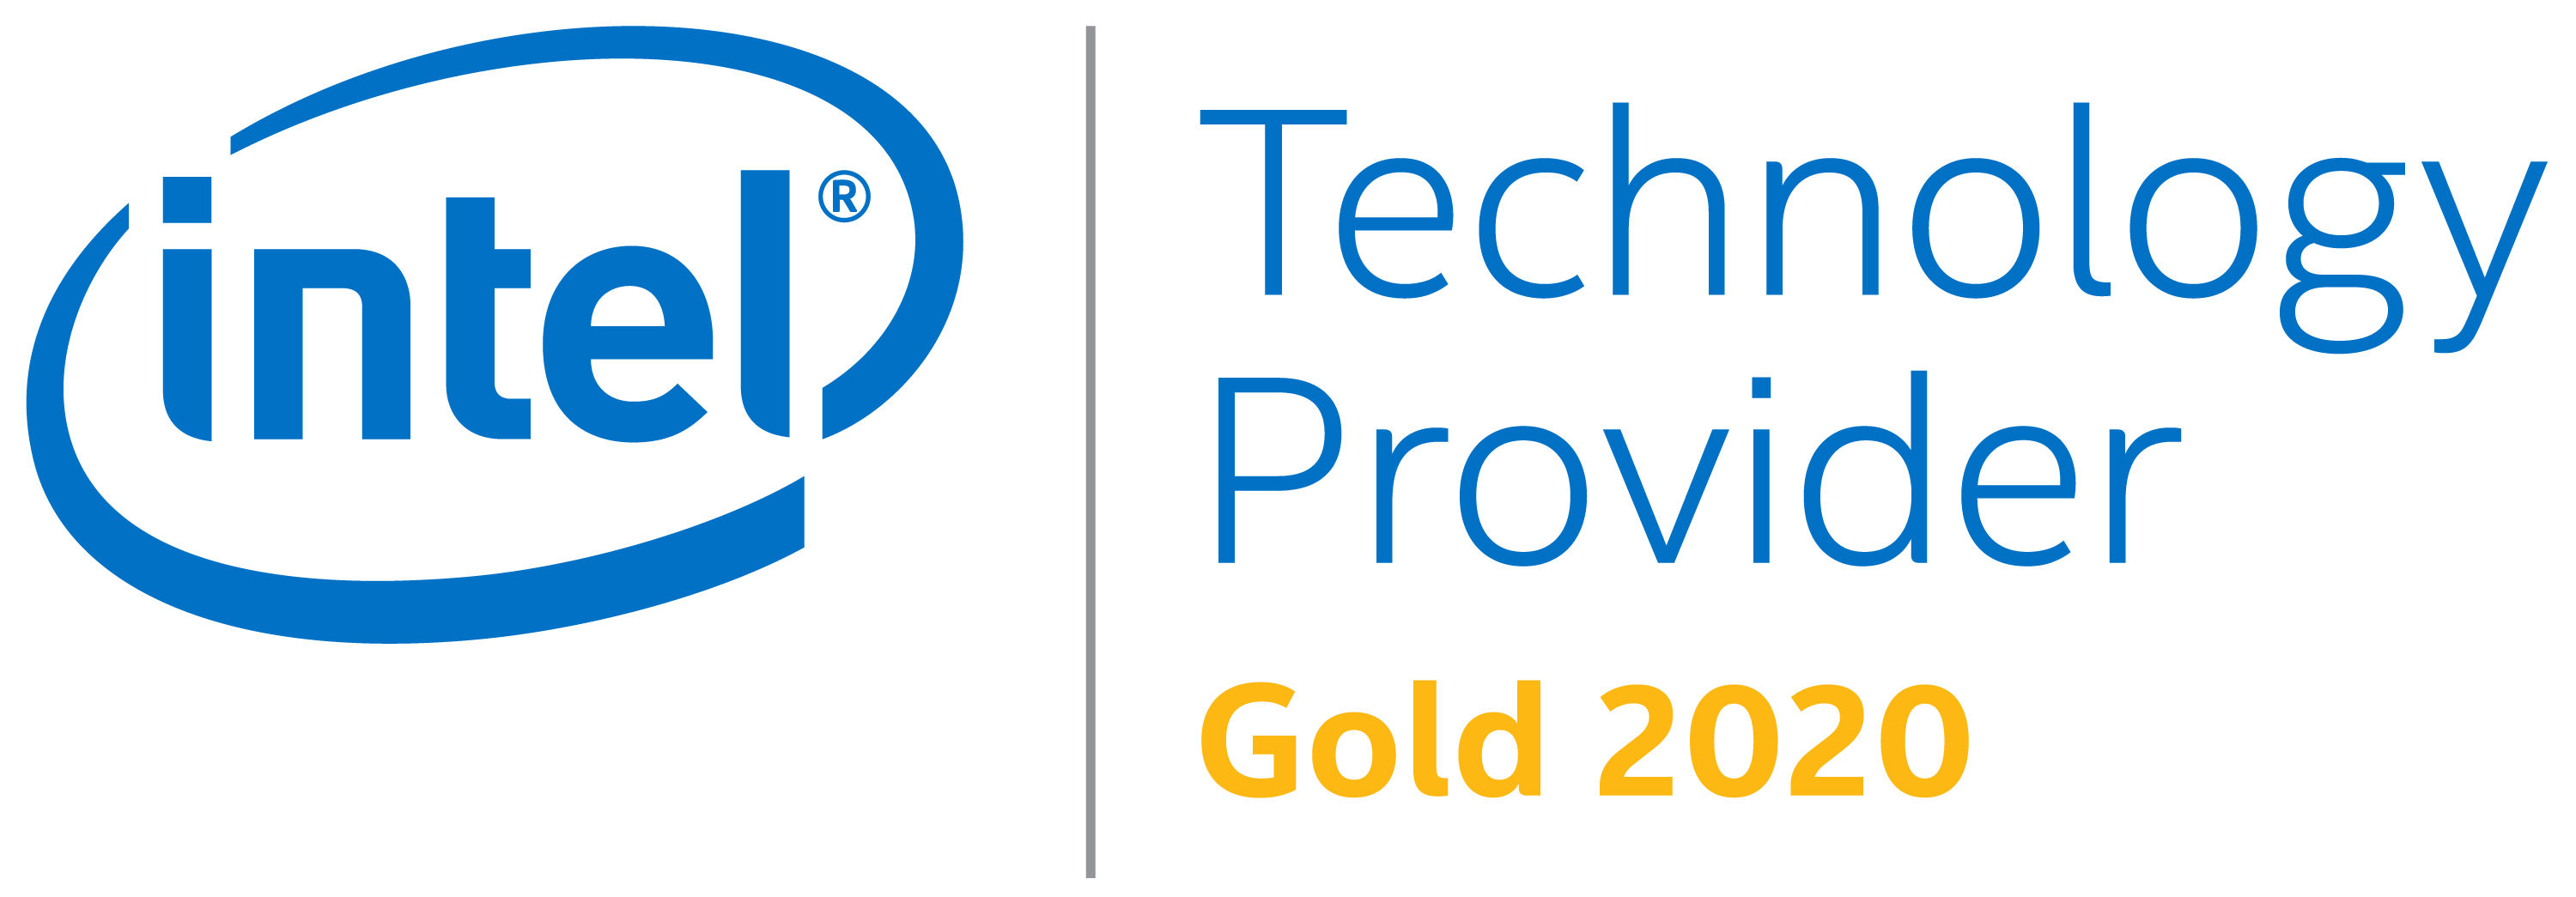 Aria are an Intel Gold Technology Provider